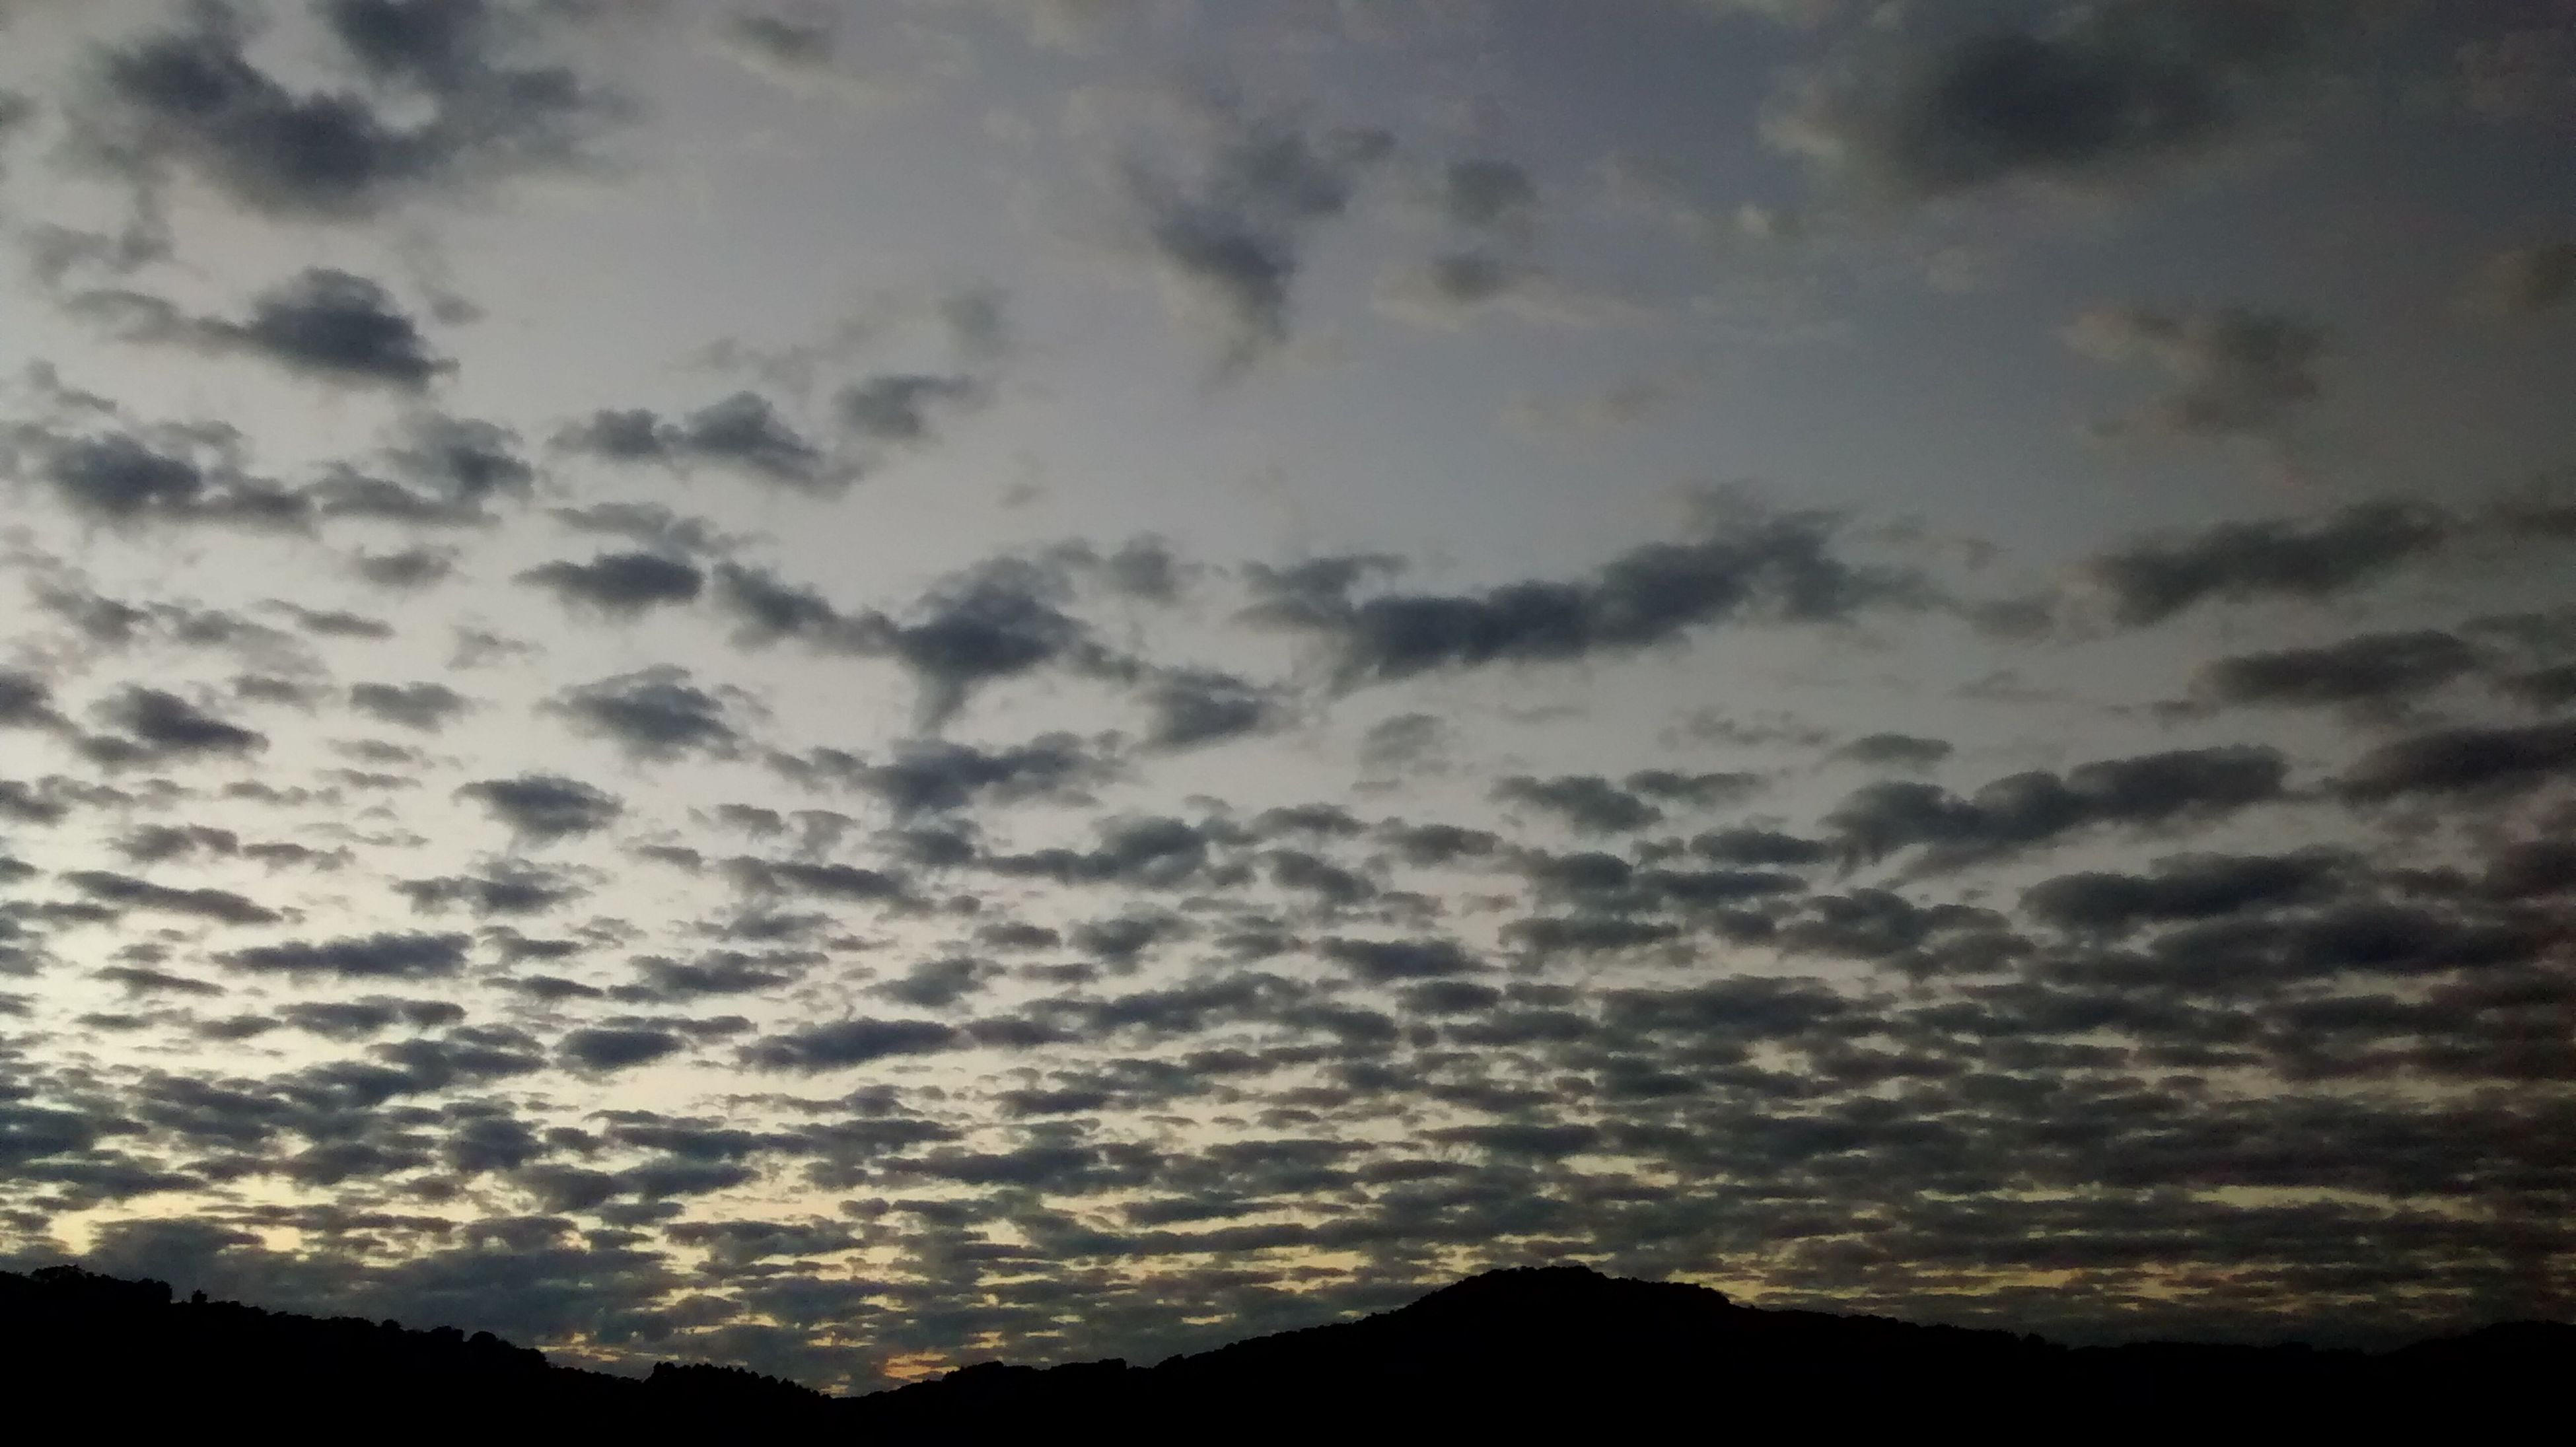 sky, silhouette, scenics, cloud - sky, tranquil scene, beauty in nature, tranquility, mountain, cloudy, nature, low angle view, cloud, sunset, idyllic, landscape, weather, dusk, cloudscape, mountain range, outdoors